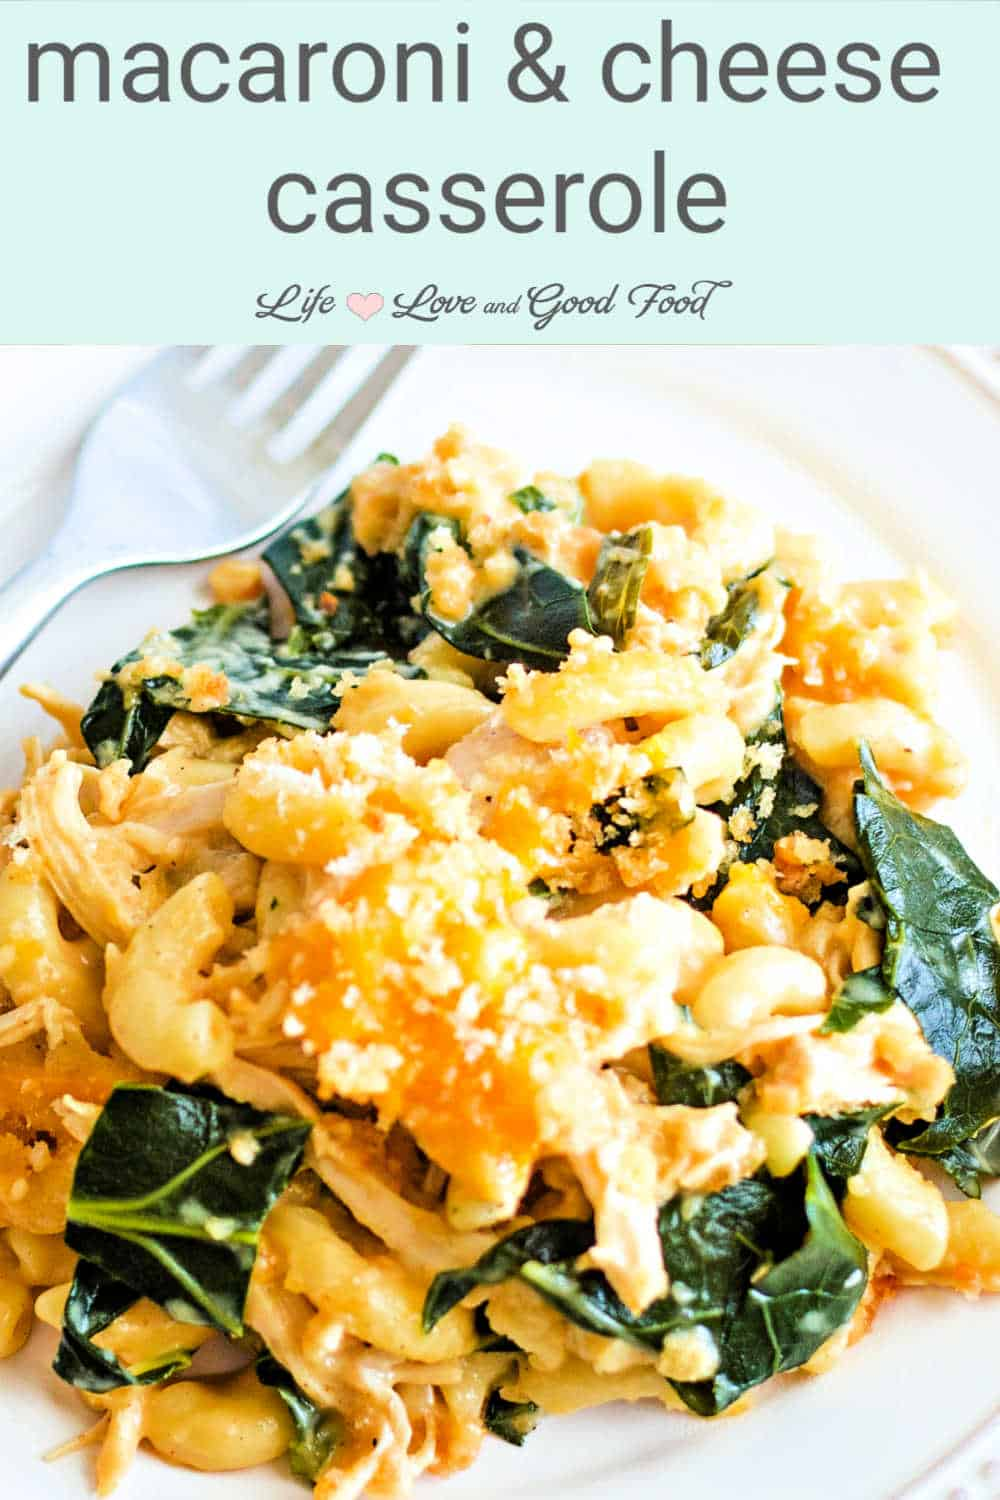 Served hot and bubbly, my Southern-style homemade Macaroni and Cheese Casserole is loaded with chunks of tender rotisserie chicken and green, leafy collard greens in a rich and creamy cheese sauce. Not your run-of-the-mill mac and cheese, this bold and delicious casserole ranks among the very BEST in comfort food.